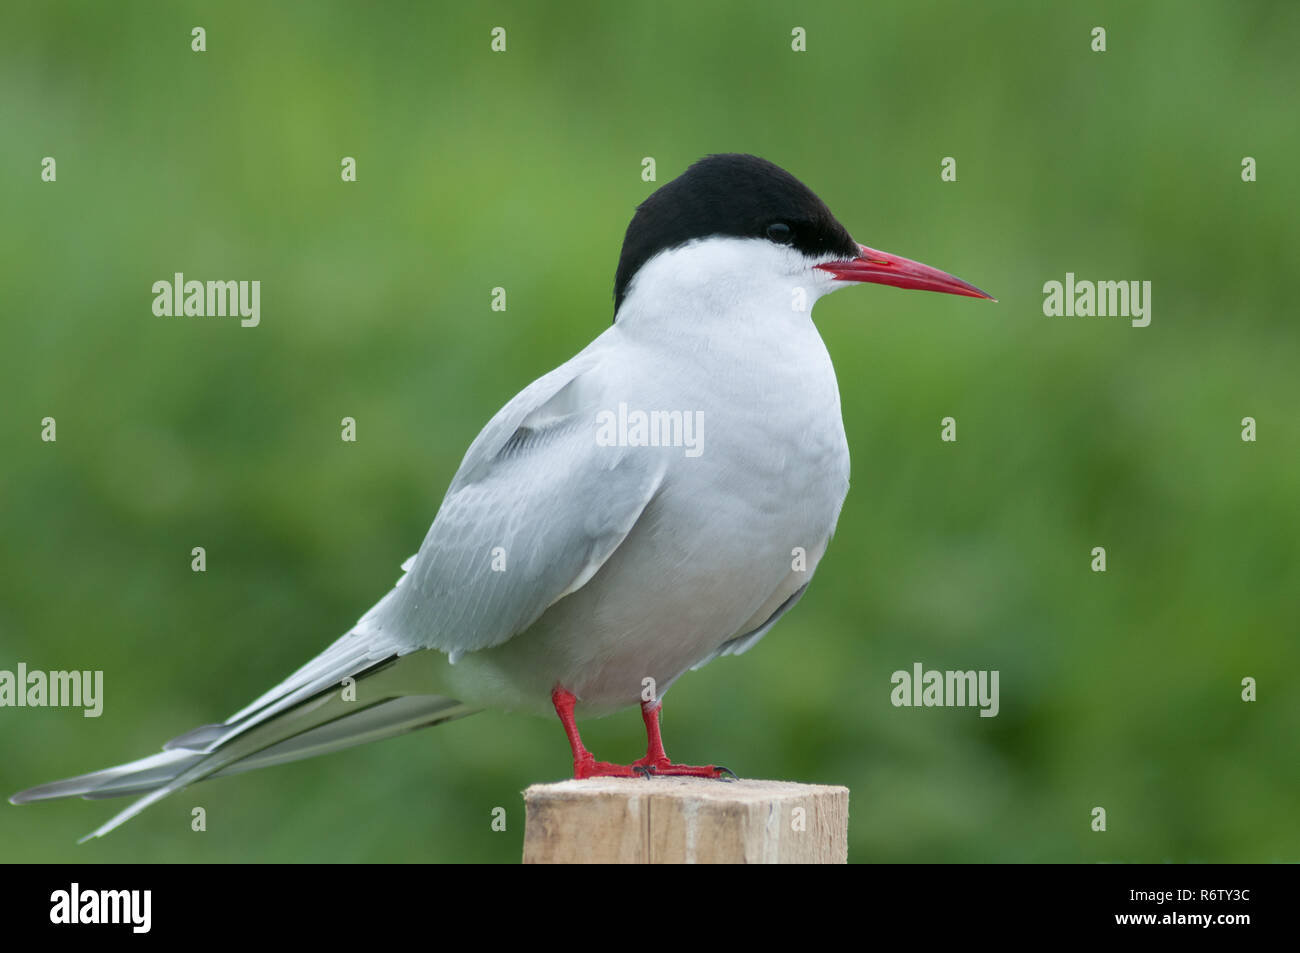 Arctic tern sitting on a fence post on the Farne Islands, Northumberland, England - Stock Image